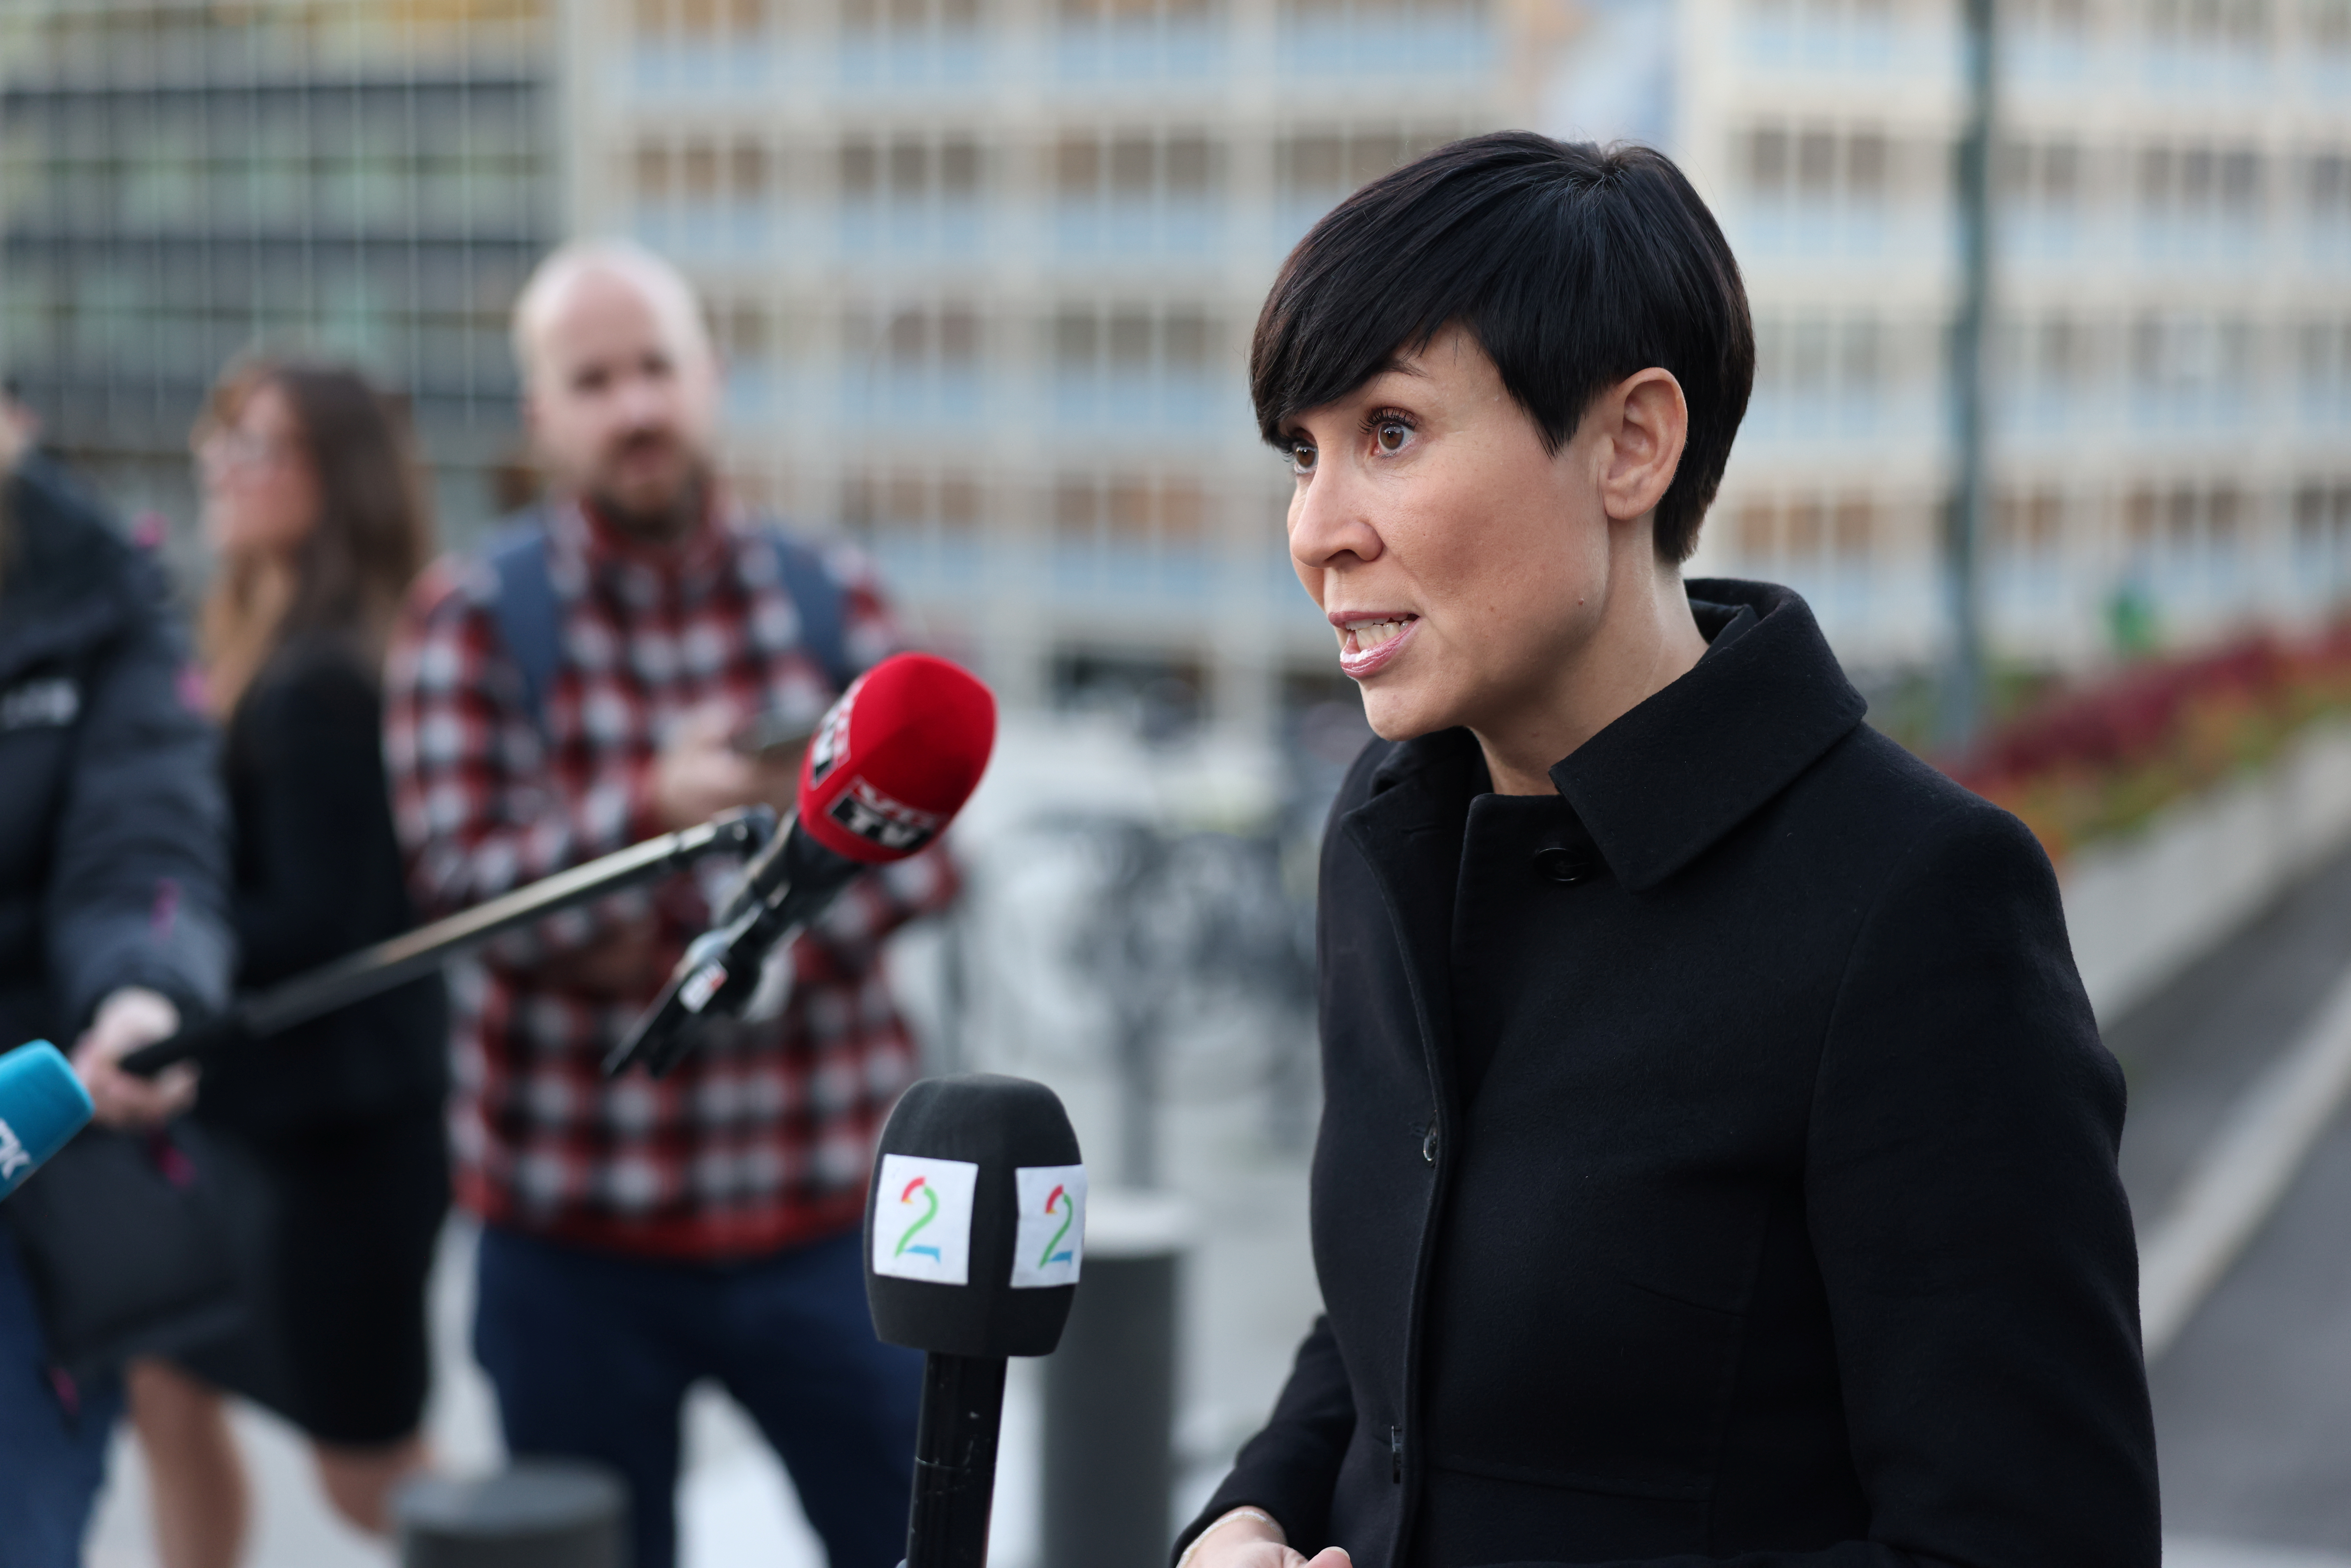 Norway's Foreign Minister Ine Marie Eriksen Soreide talks to the media outside the Ministry of Foreign Affairs due the Norwegian government believing that Russia is behind a cyber attack on the Norwegian Parliament, in Oslo, Norway October 13, 2020.  Orn E. Borgen/NTB/via REUTERS